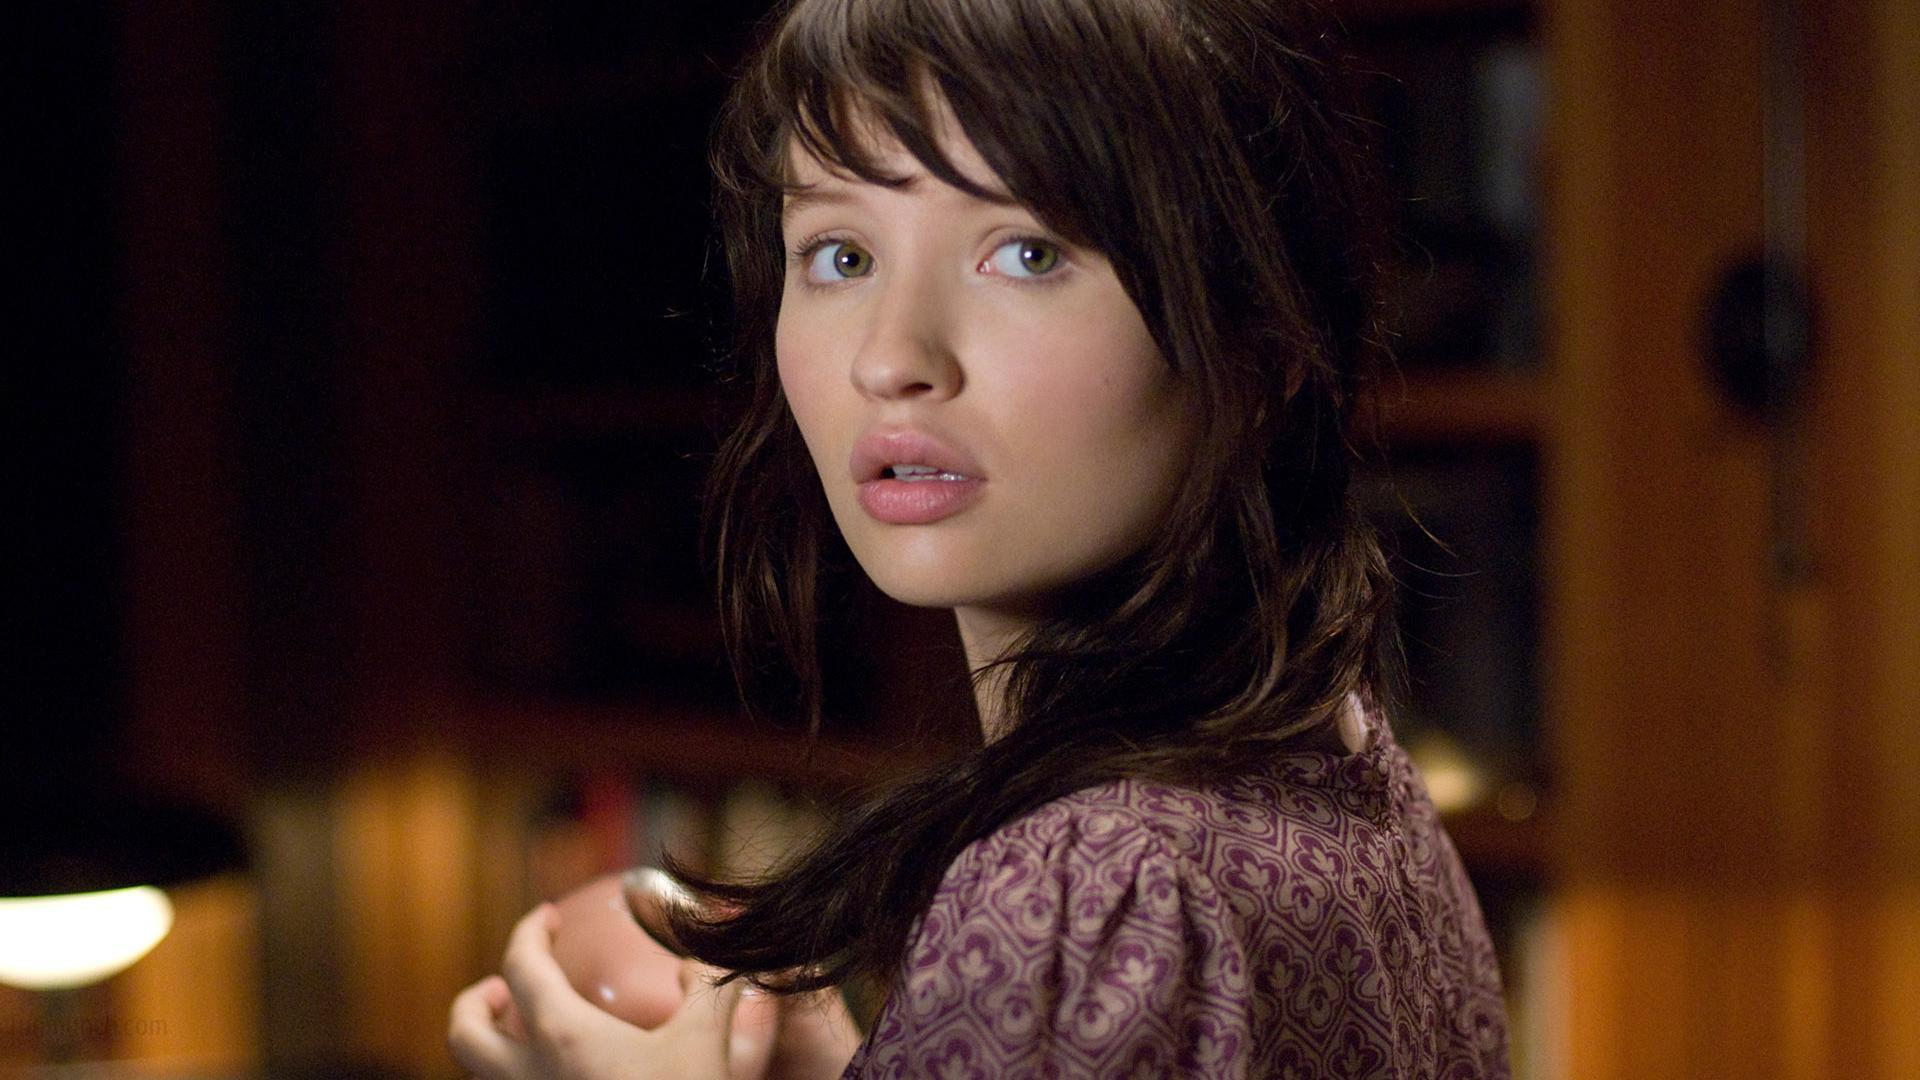 1920x1080 - Emily Browning Wallpapers 22